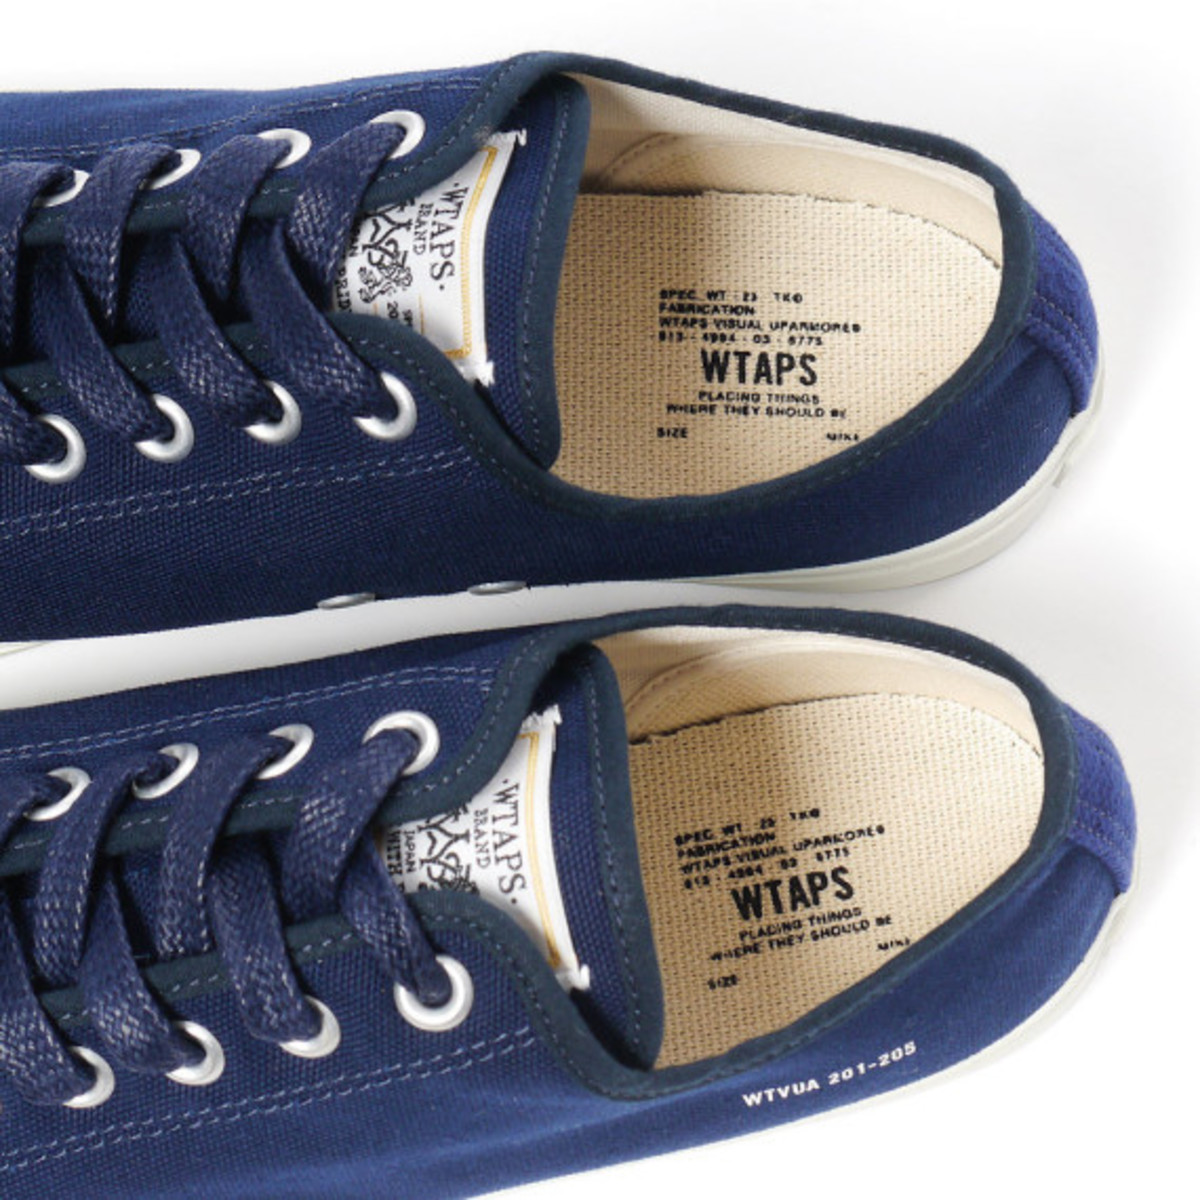 wtaps-spring-summer-2013-canvas-sneakers-13